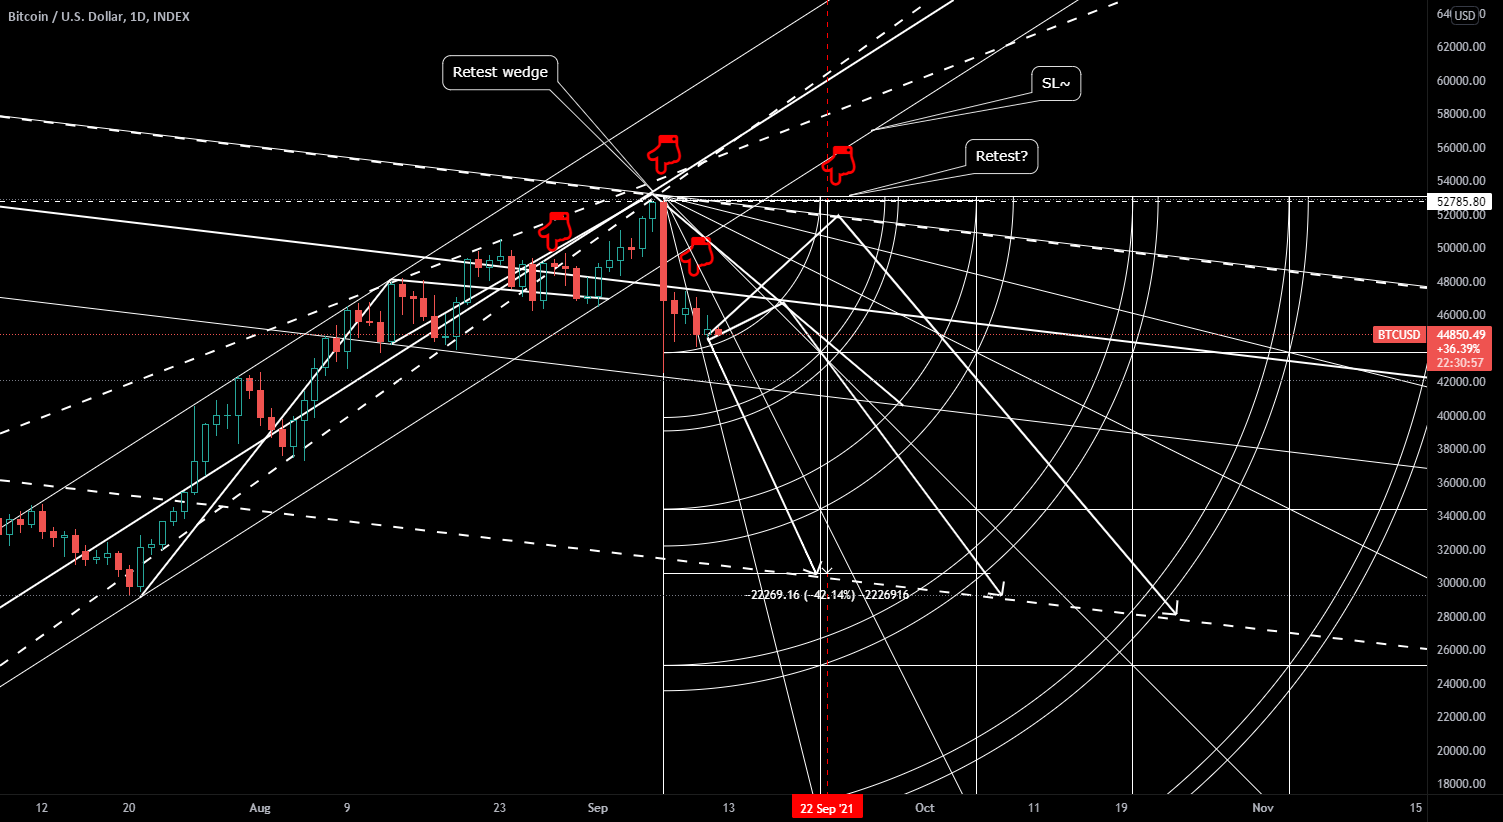 Crypto - Bitcoin Going Lower for INDEX:BTCUSD by DarkPoolTrading